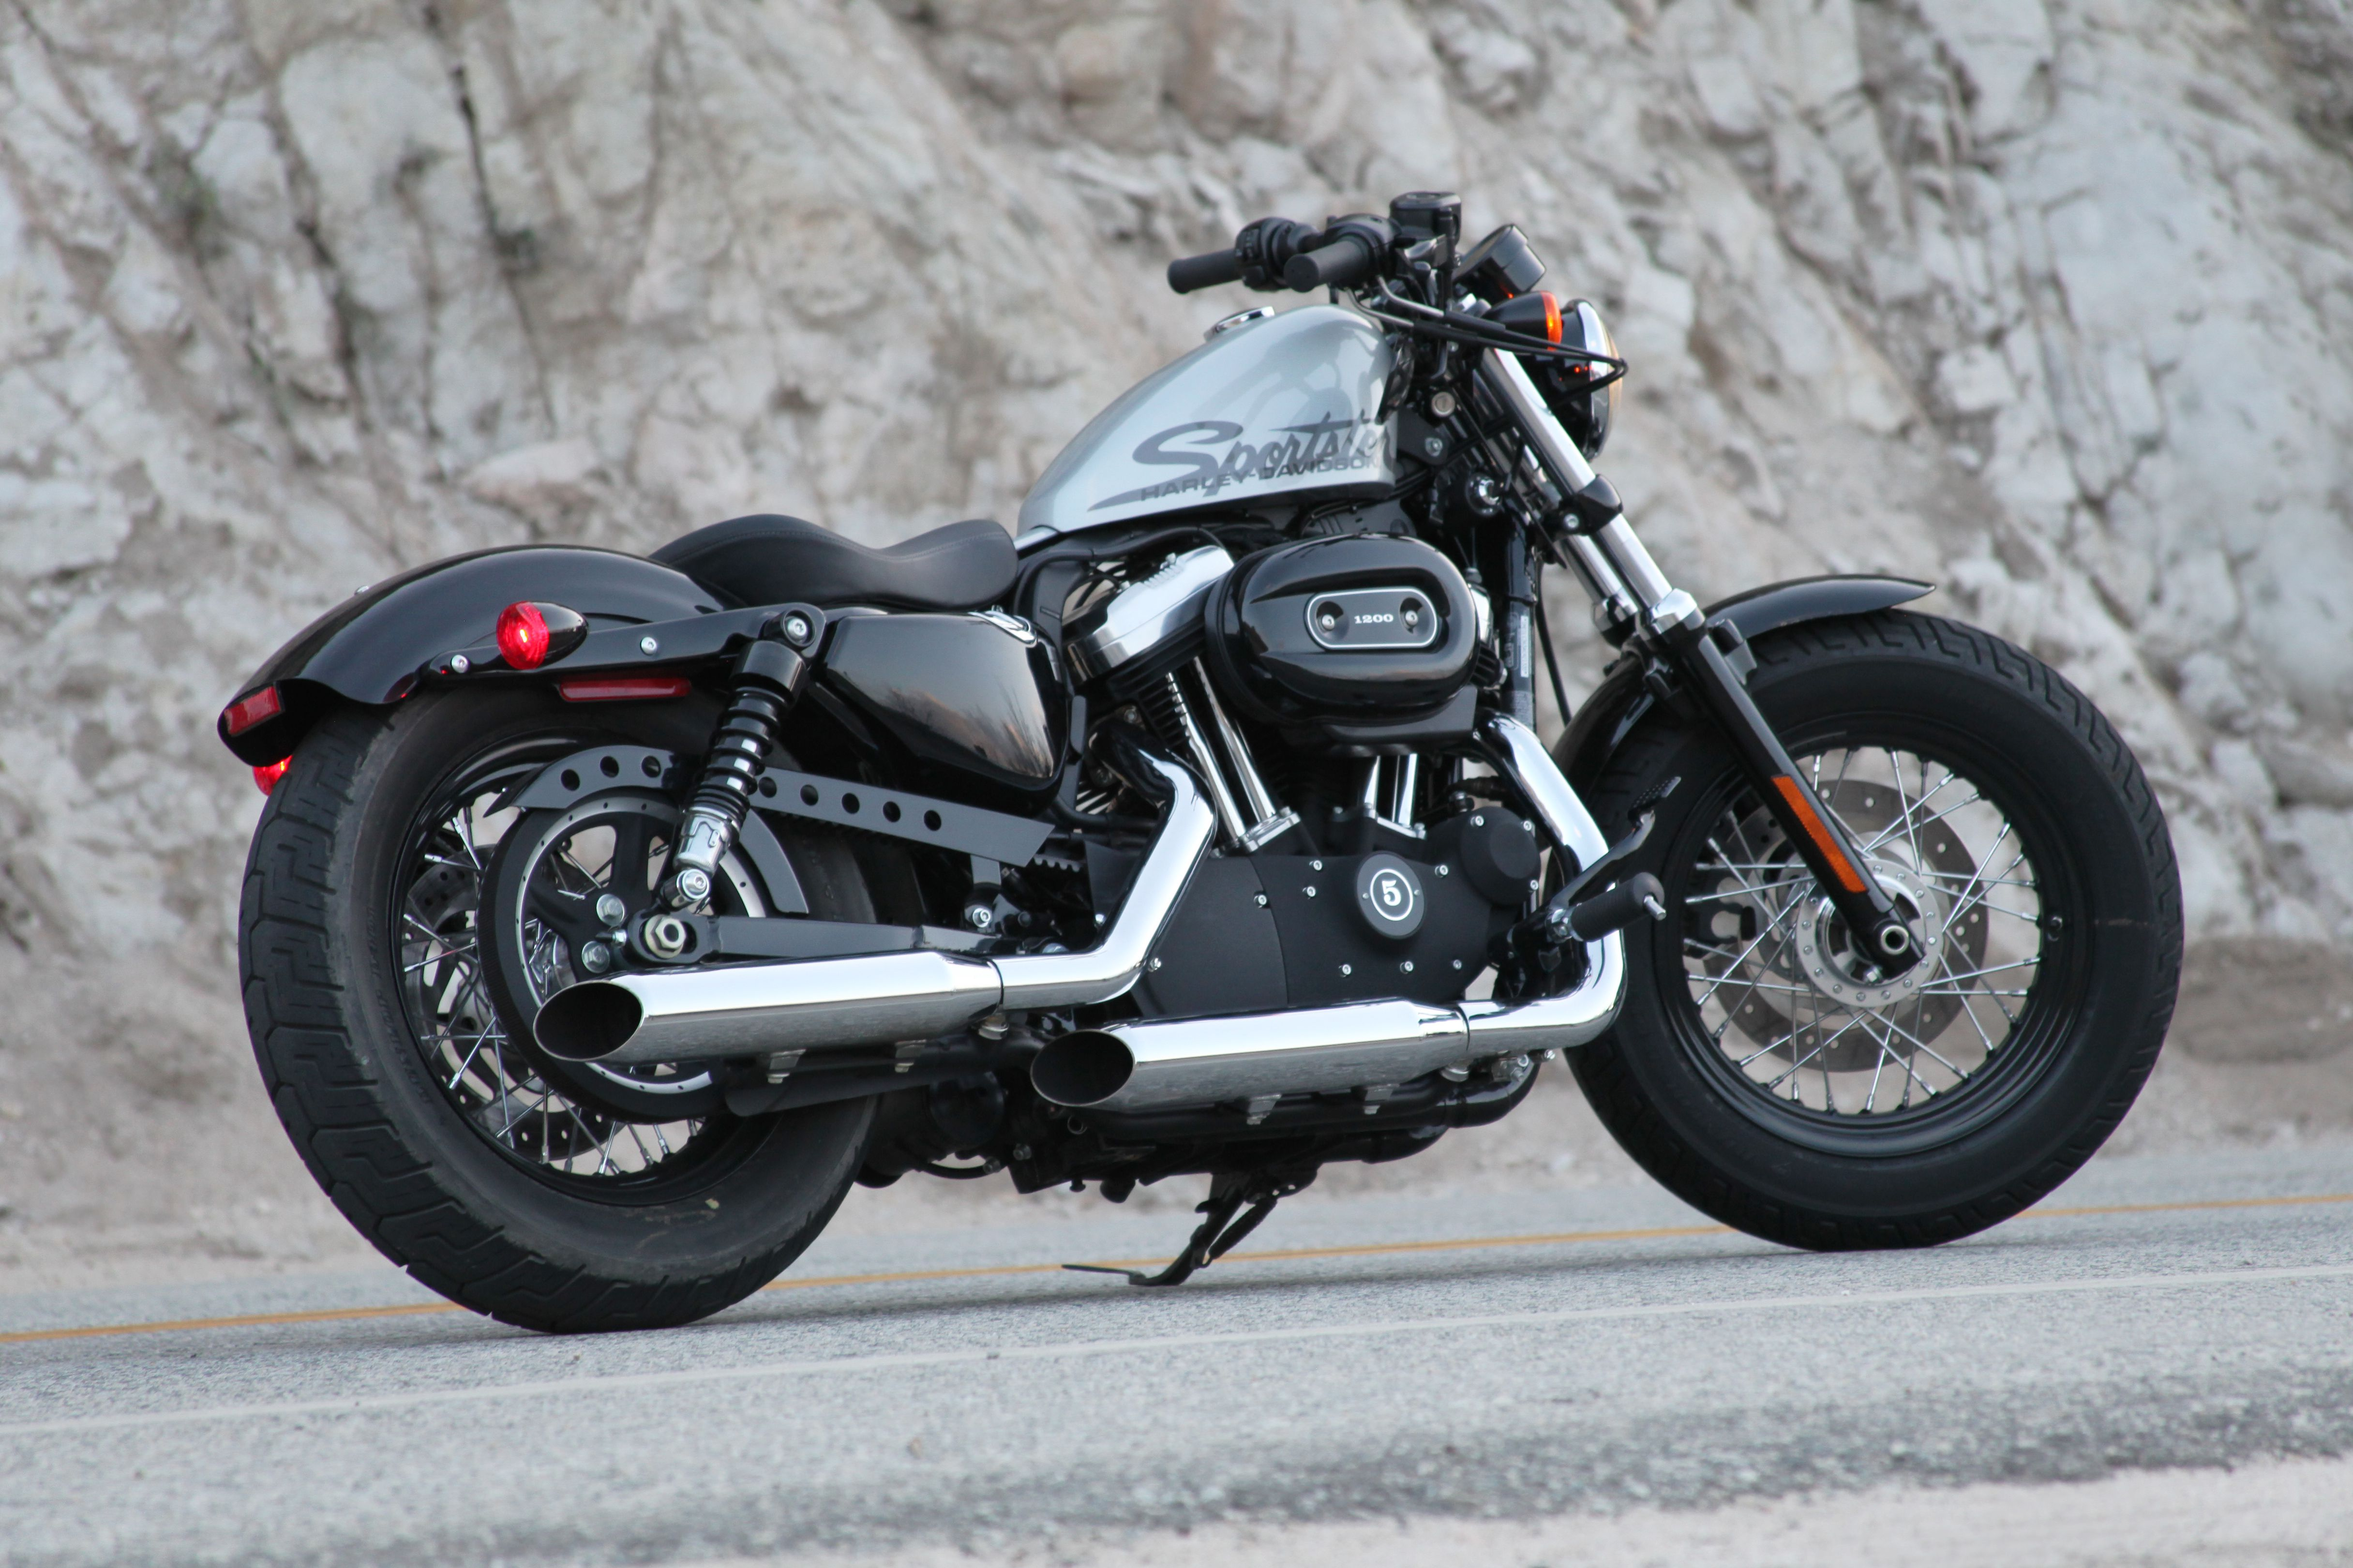 10 Retro Motorcycles You Can Buy Today 1960s Honda Harley Davidson Sportster 48